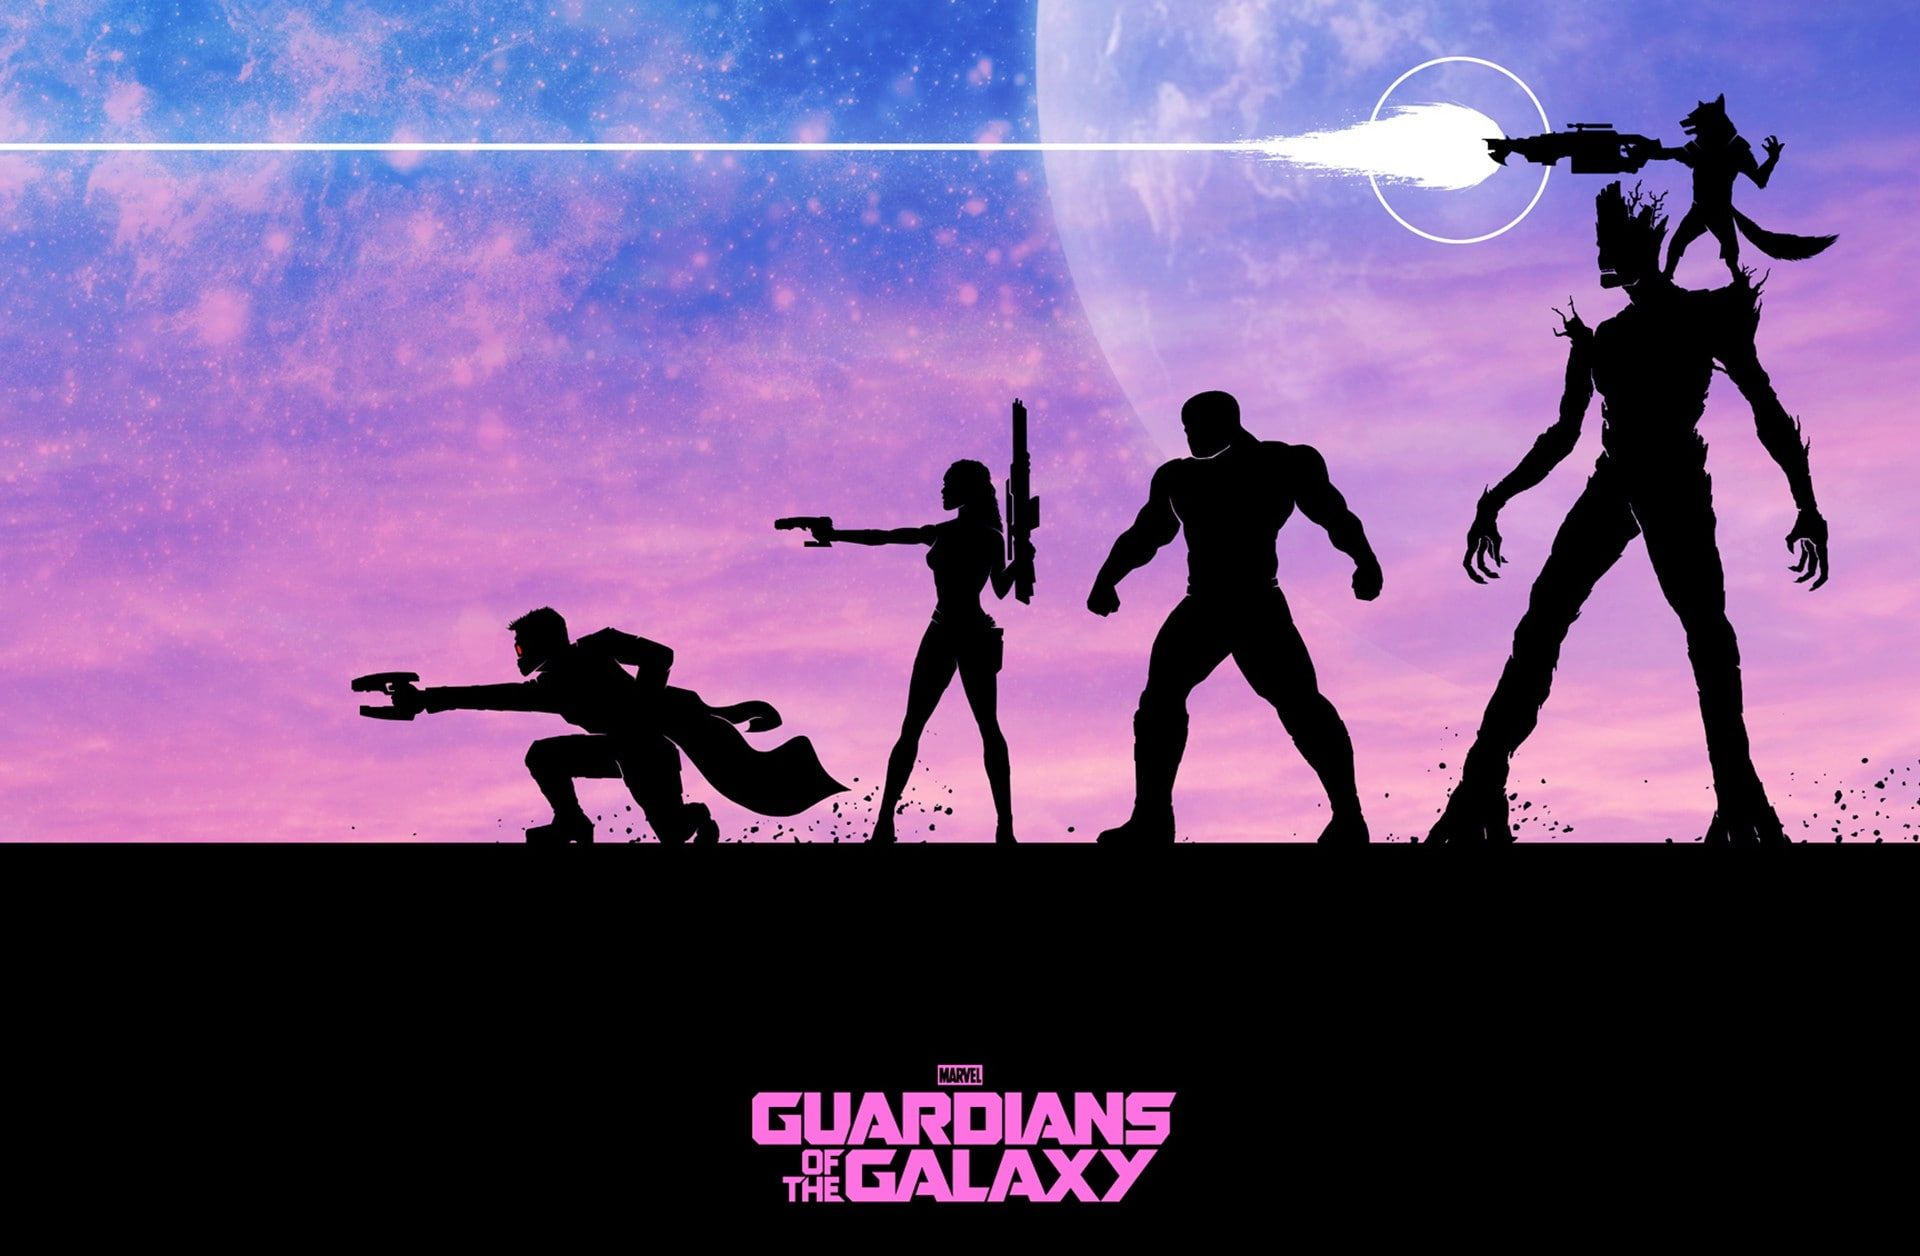 Guardians Of The Galaxy Guardians Of The Galaxy Peter Quill Star Lord Gamora Movie Drax The Destroyer Groot Guardians Of The Galaxy Galaxy Wallpaper Galaxy